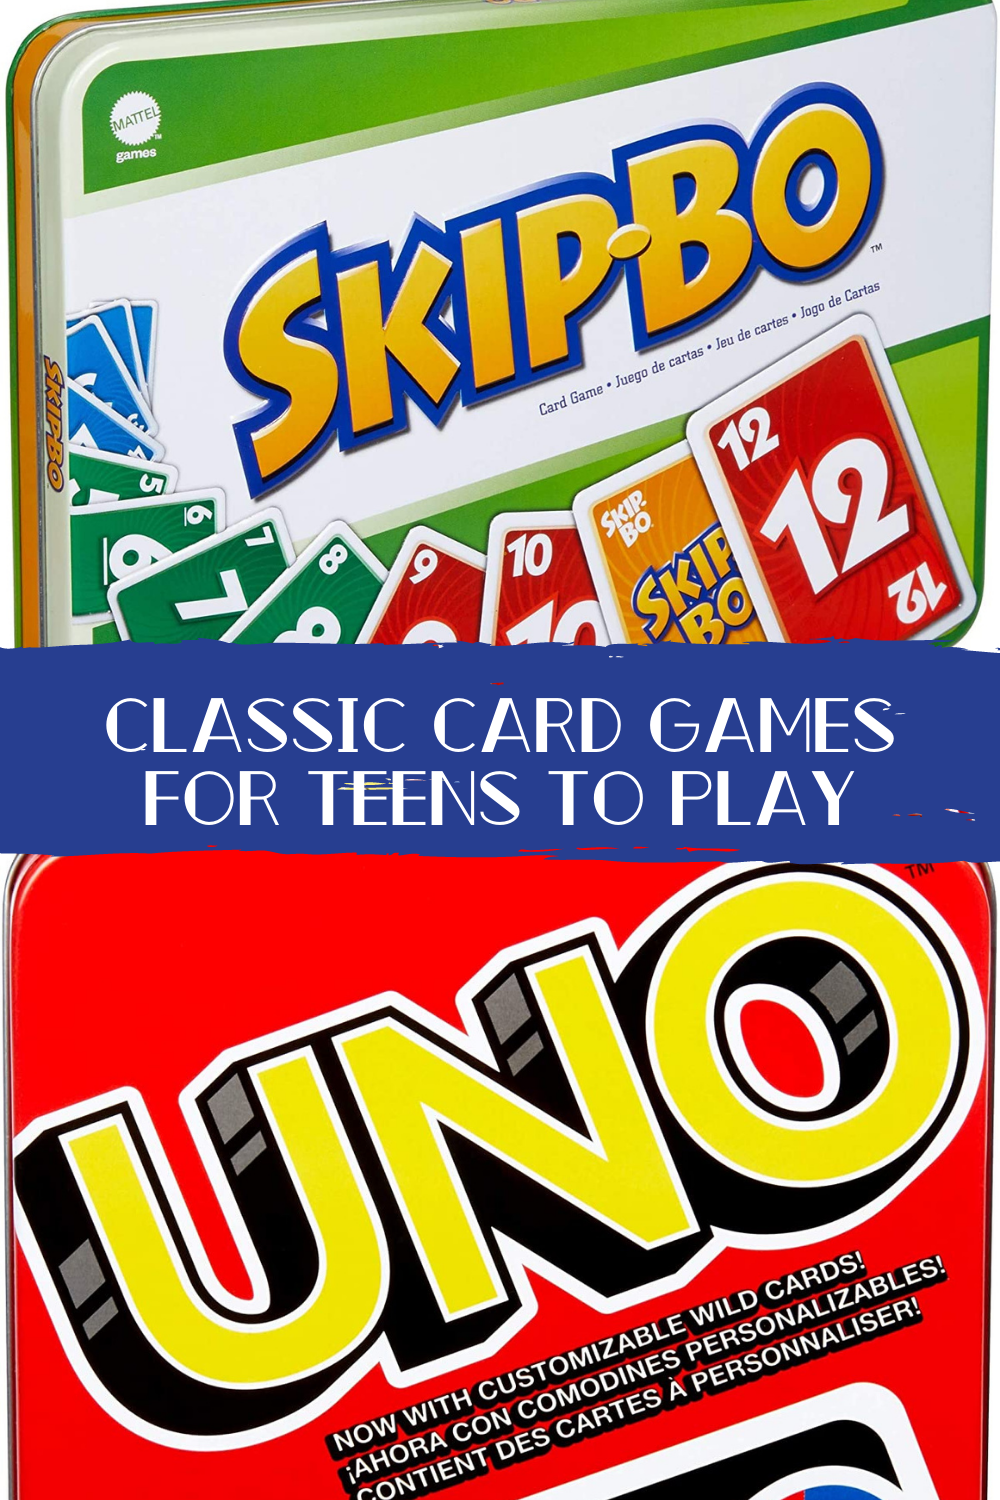 Classic Card Games for Teens